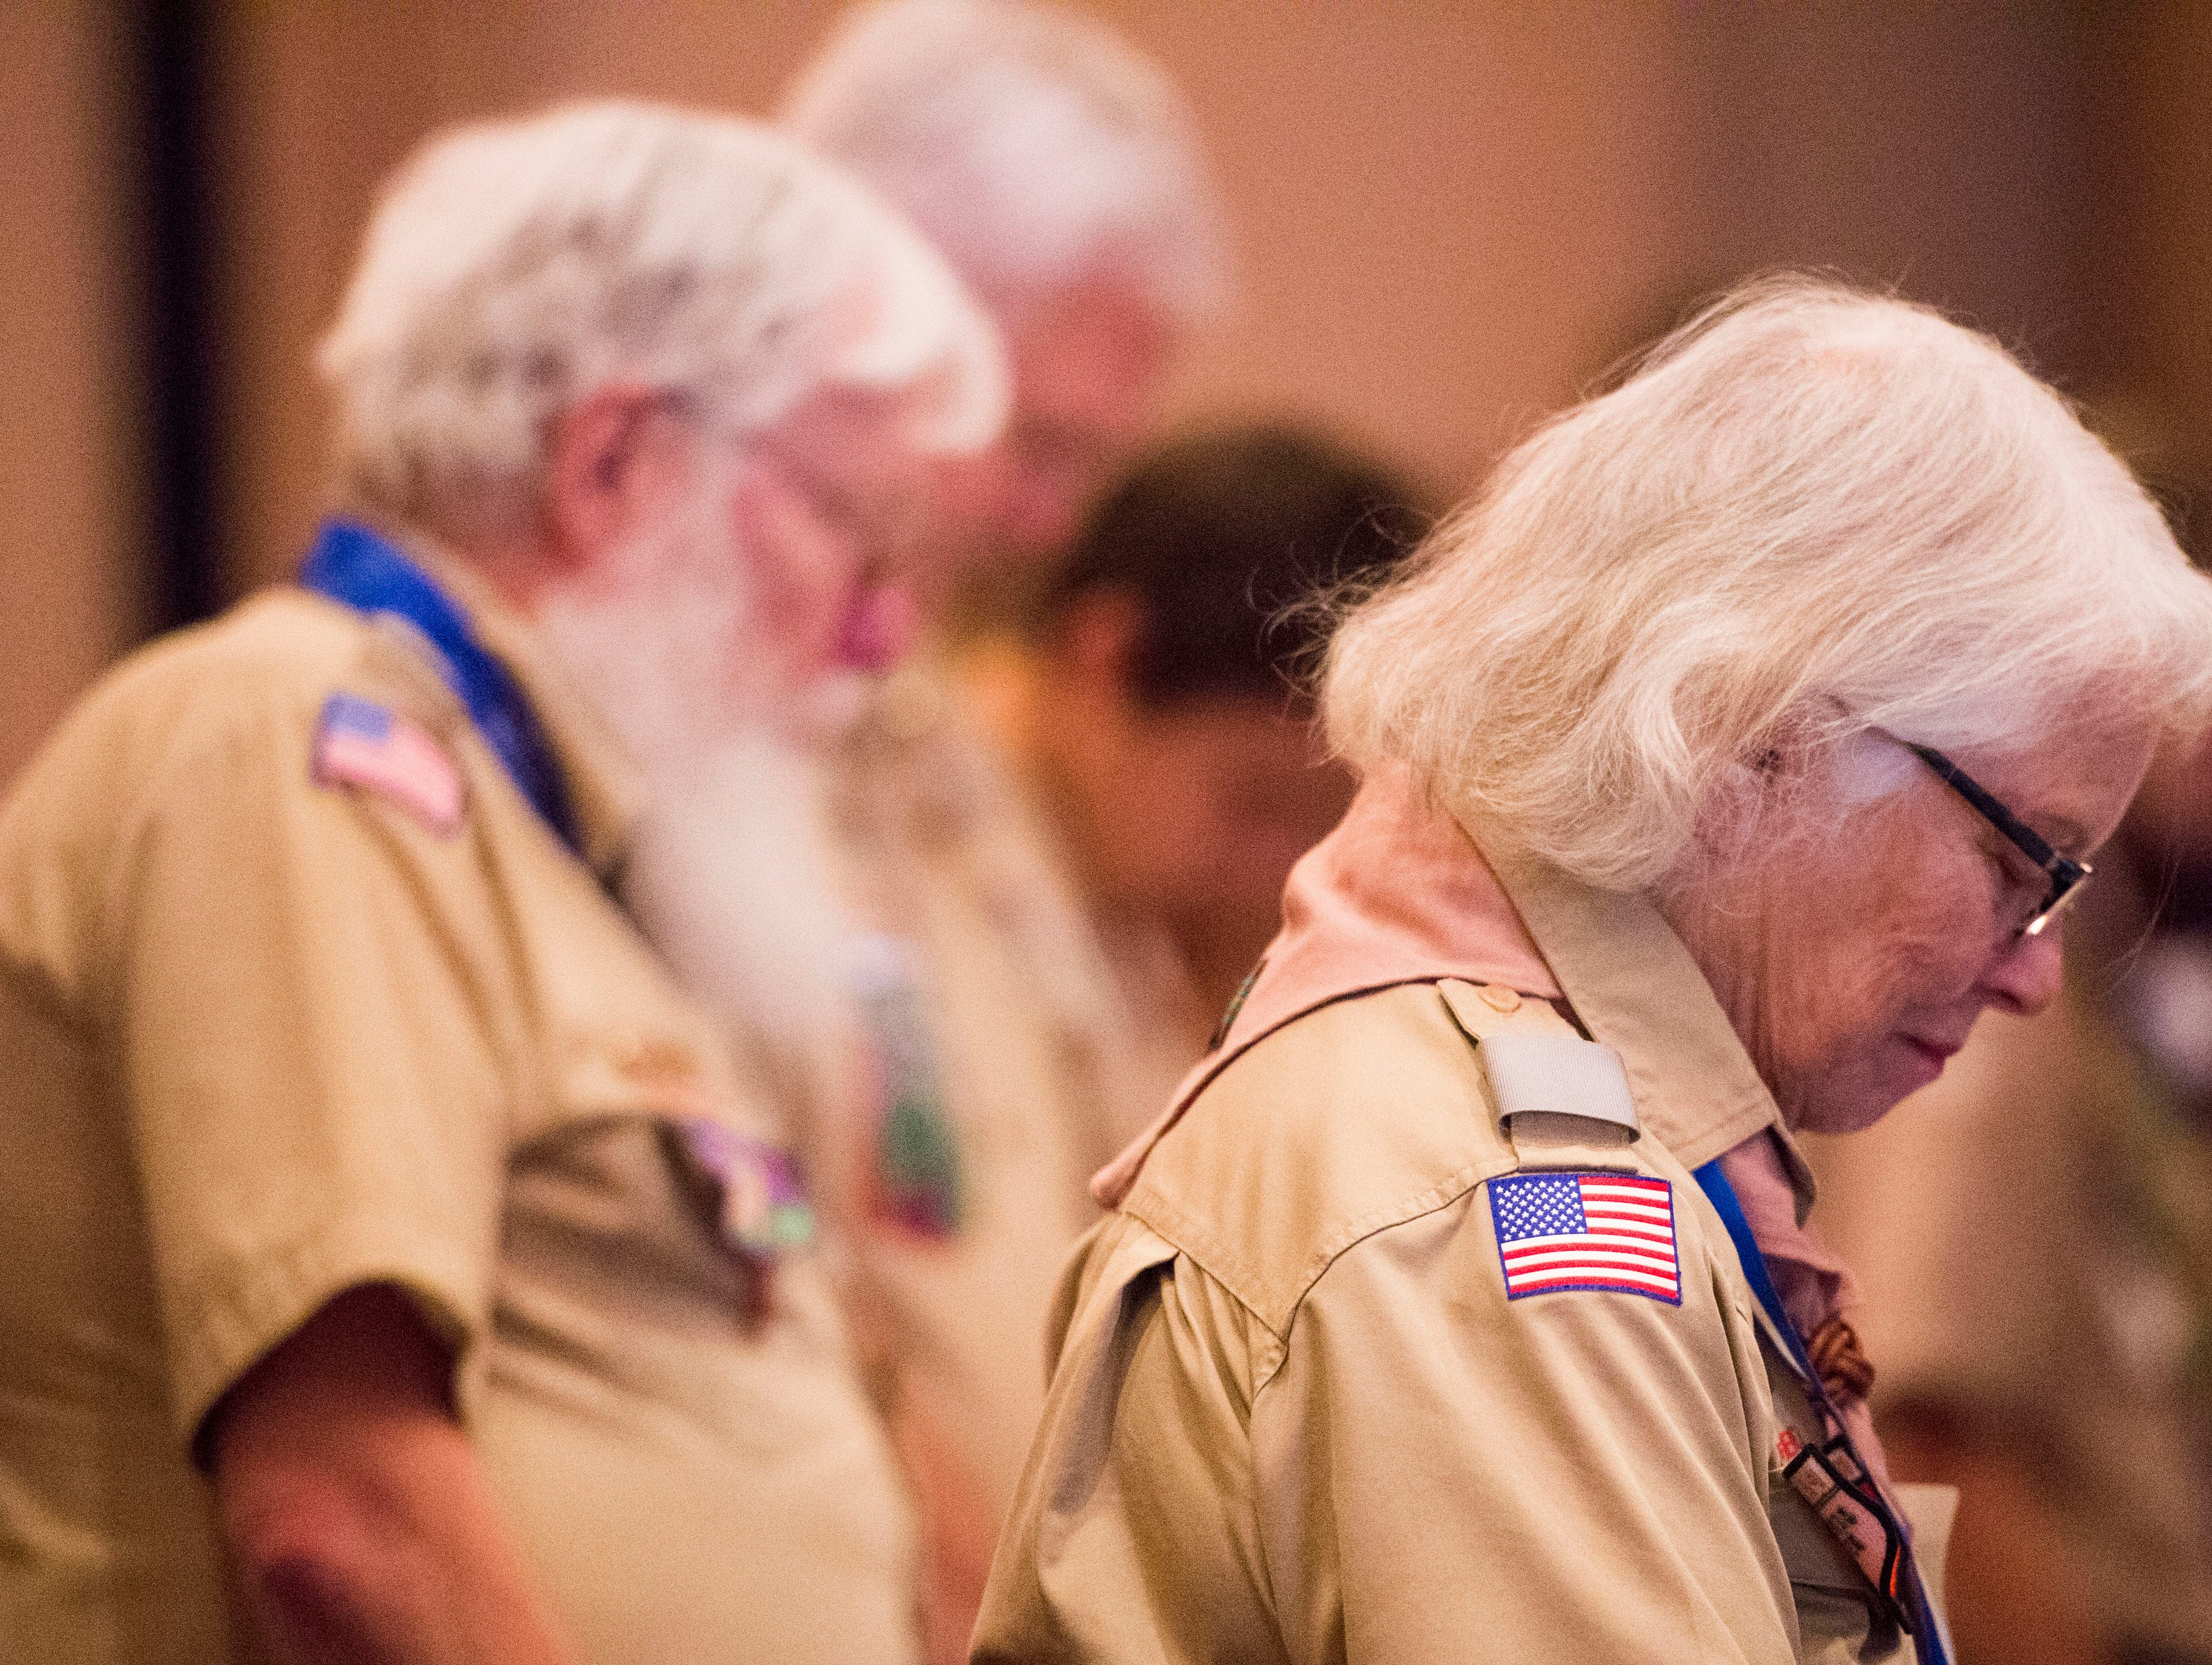 Sandra Lee prays at the 2018 Eagle Scout gathering held at Hotel Knoxville Thursday, Nov. 15, 2018. Sam Beall received the Silver Beaver award at the event, which is the highest award in scouting.